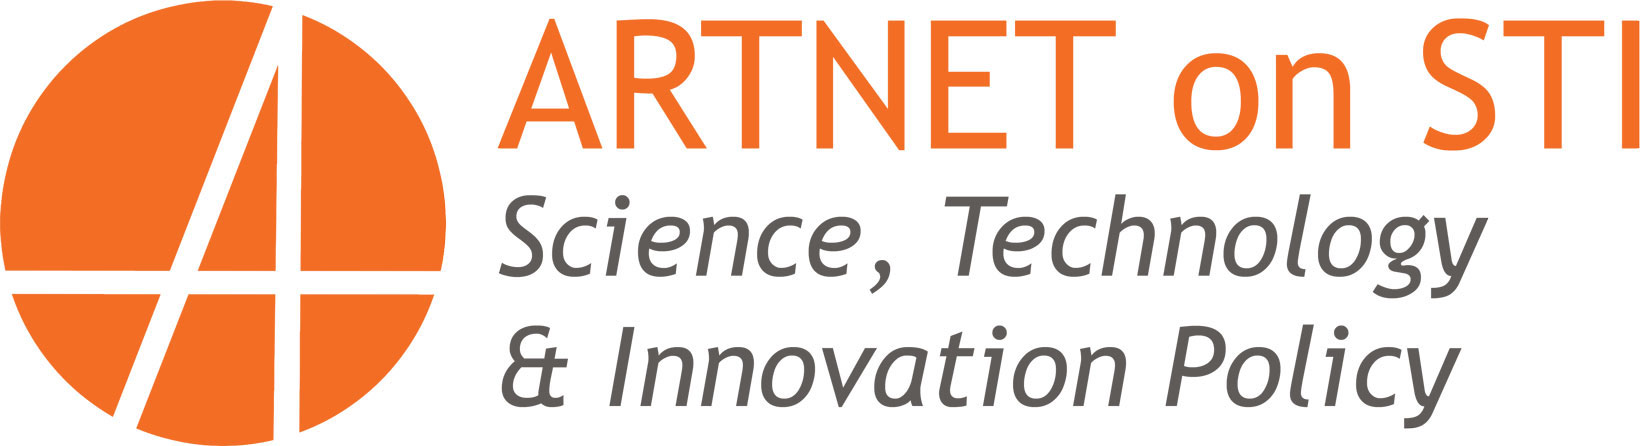 ARTNET on STI: Science, Technology & Innovation Policy